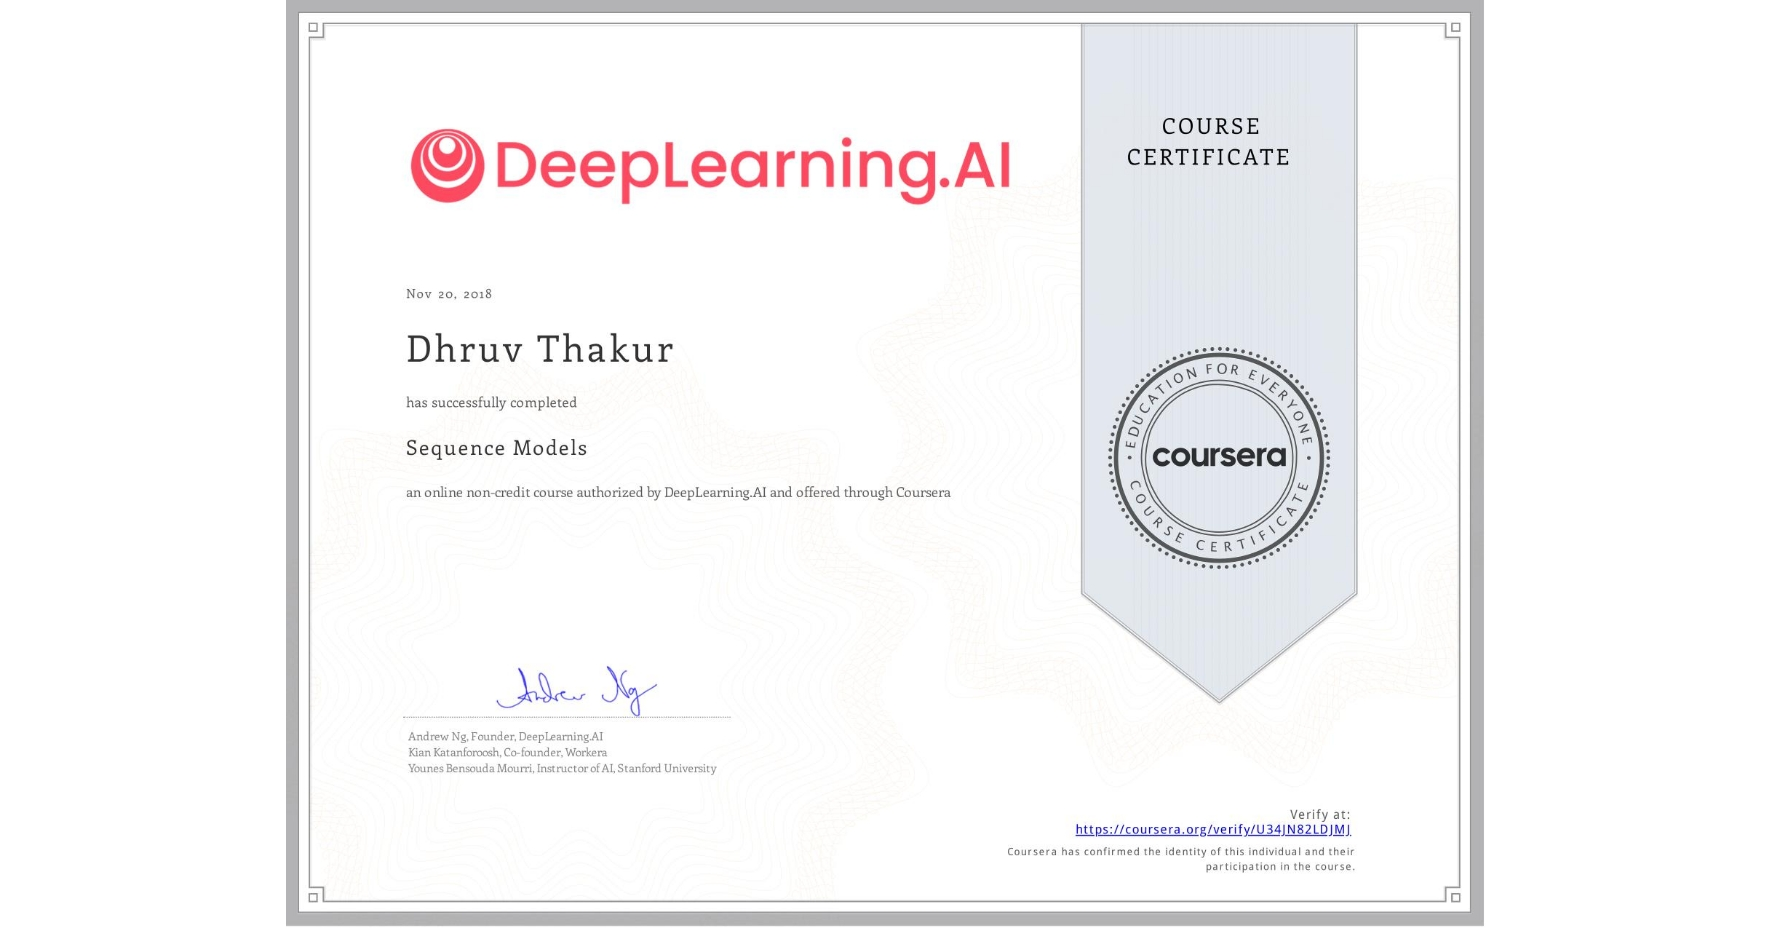 View certificate for Dhruv Thakur, Sequence Models, an online non-credit course authorized by DeepLearning.AI and offered through Coursera